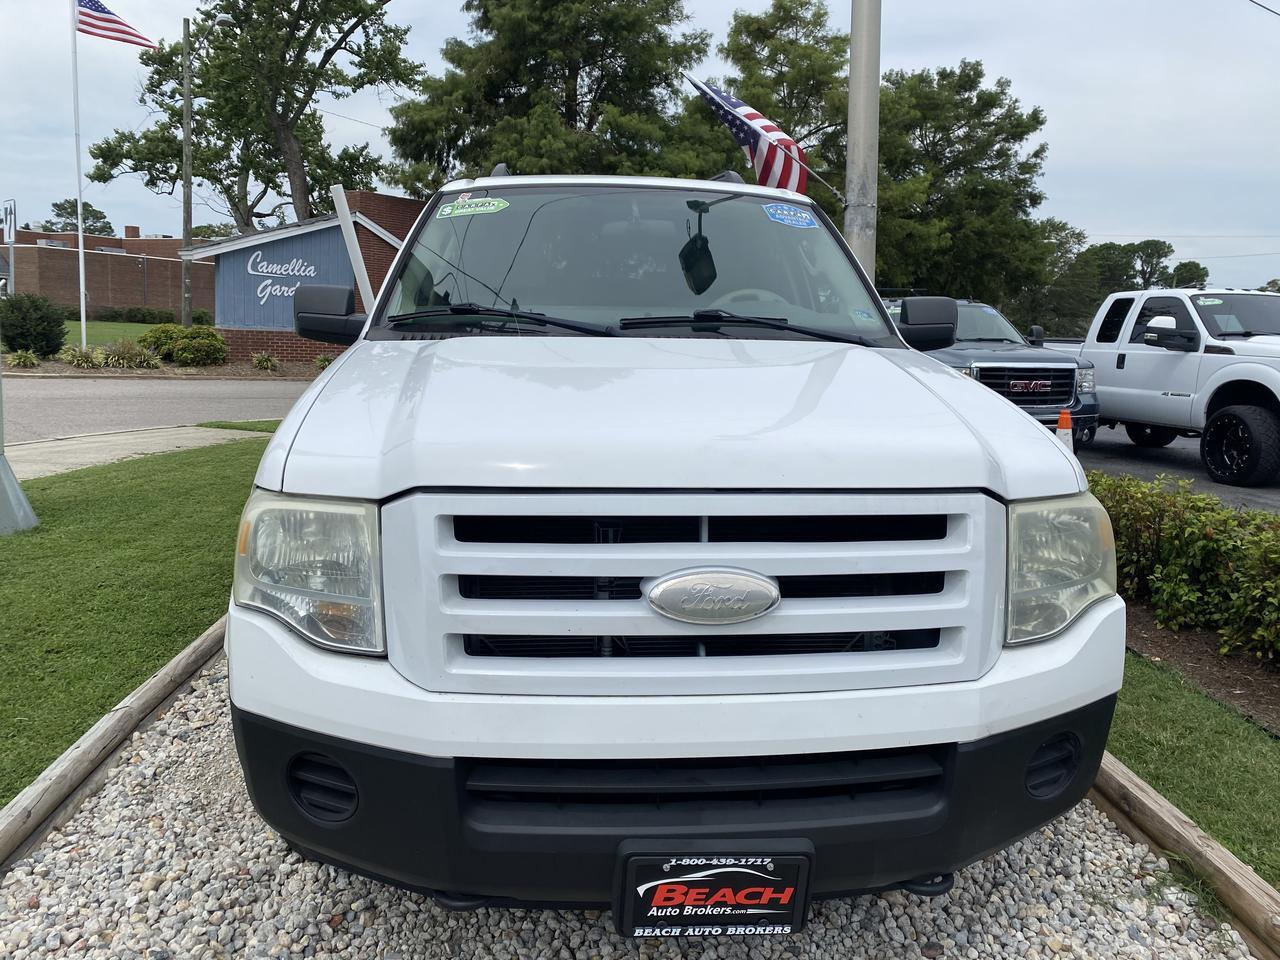 2007 FORD EXPEDITION XLT 4X4, WARRANTY, AUX/USB PORT, 3RD ROW, RUNNING BOARDS, TOW PACKAGE! Norfolk VA